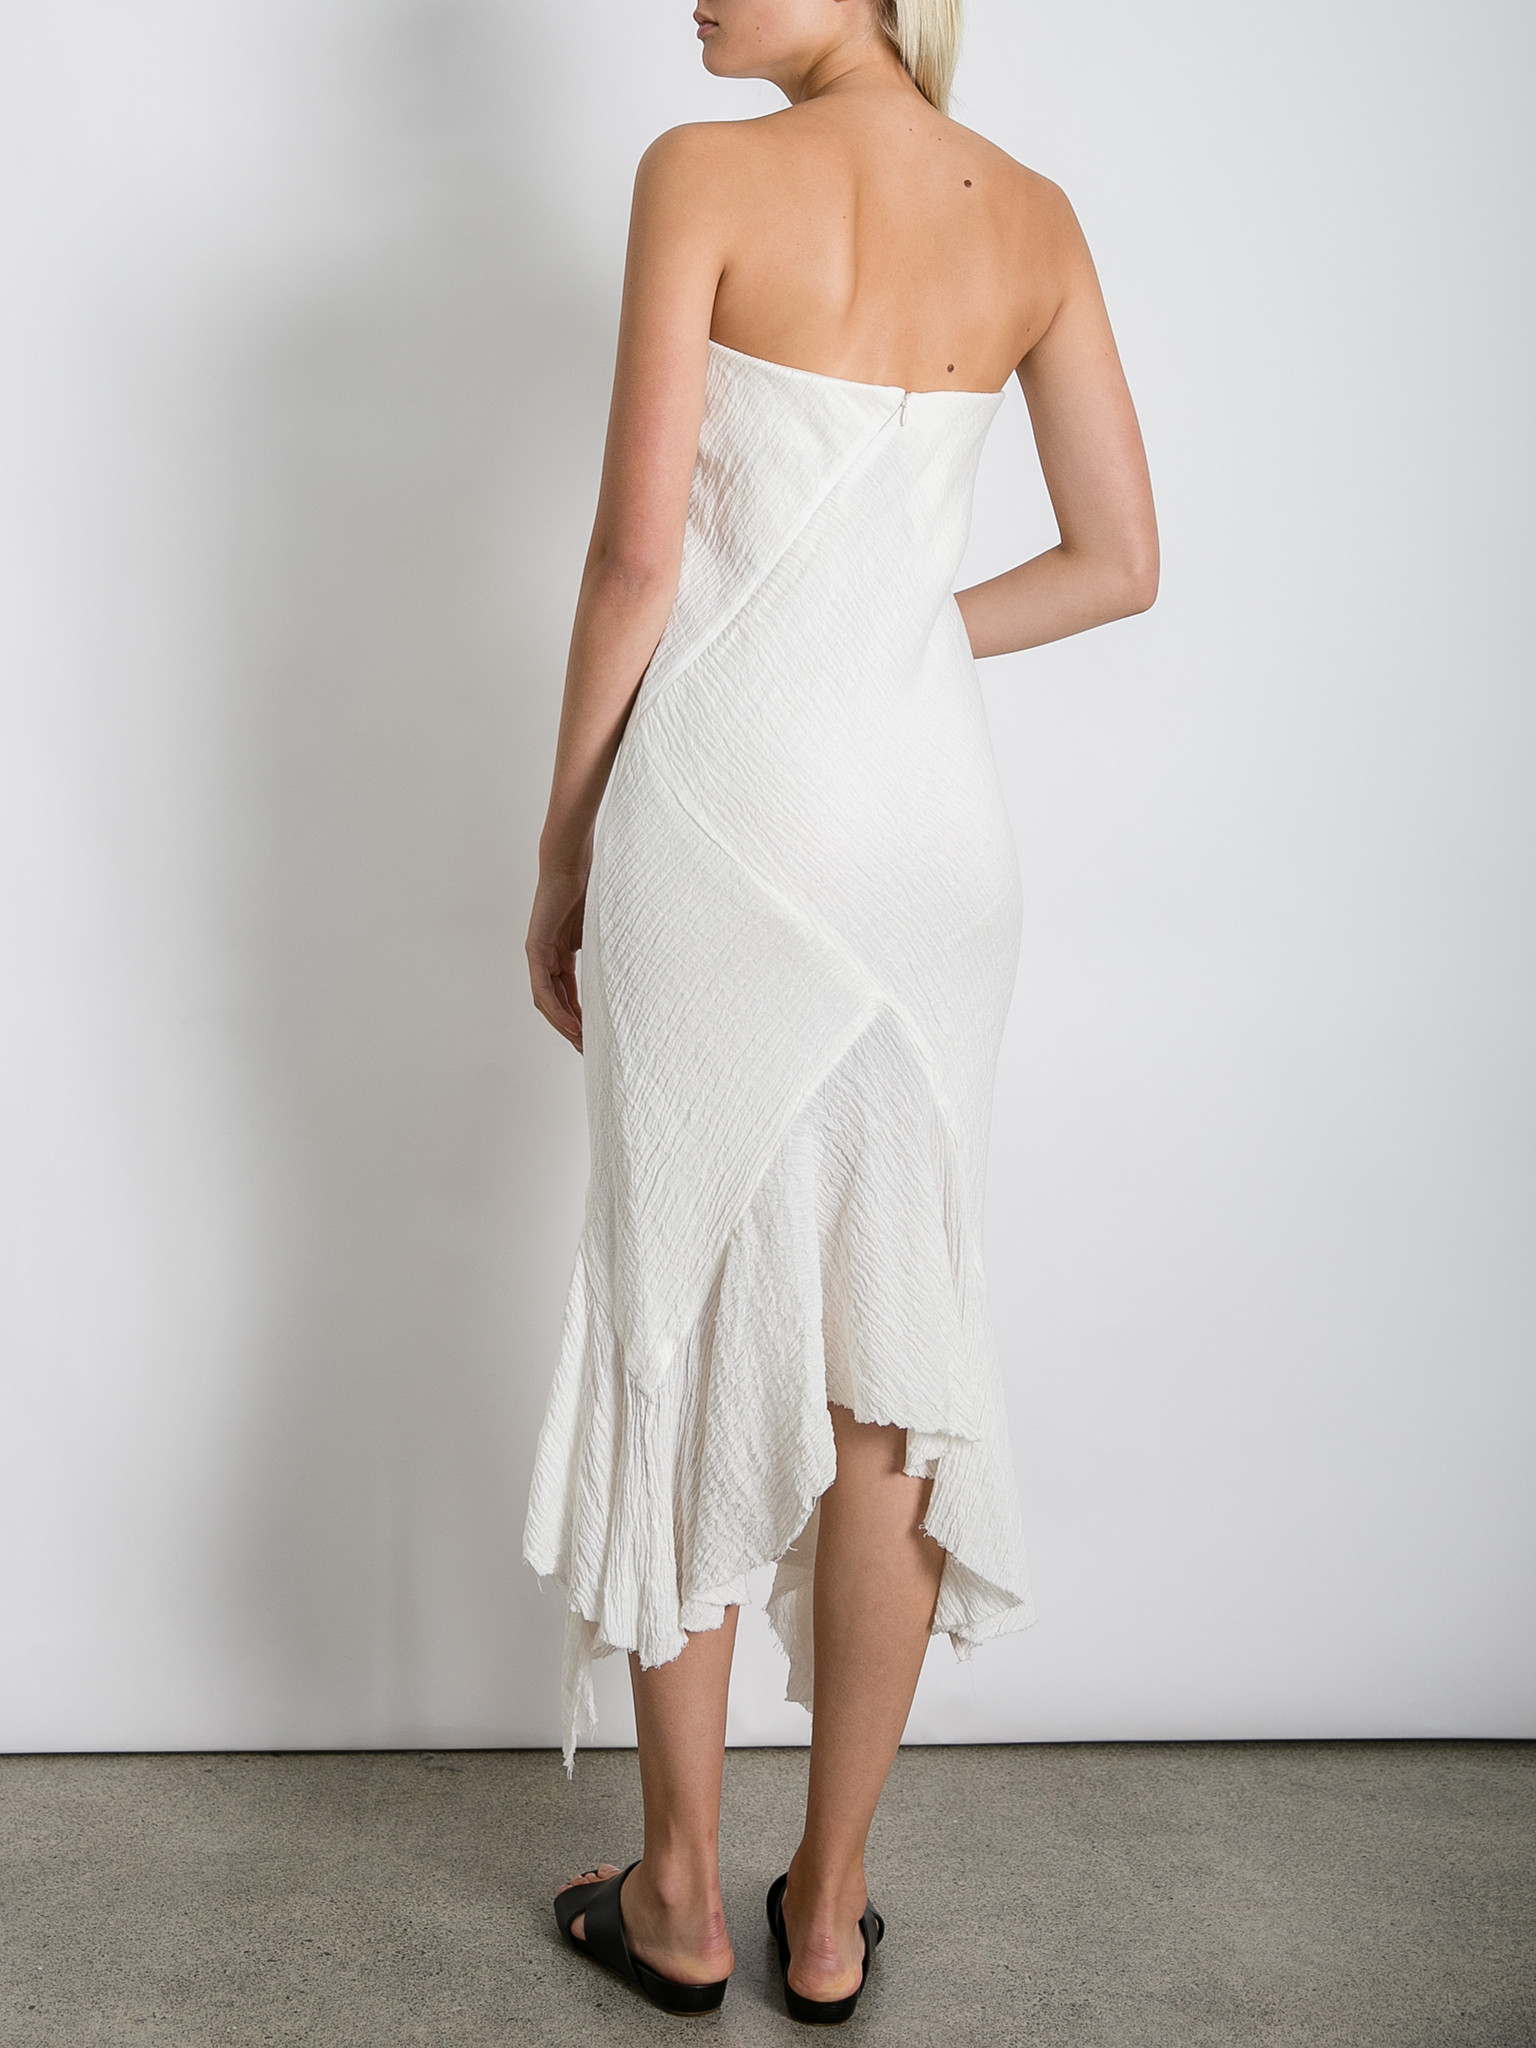 THE_UNDONE_KITX_Crush_Linen_Strapless_Dress_White_FB.jpg